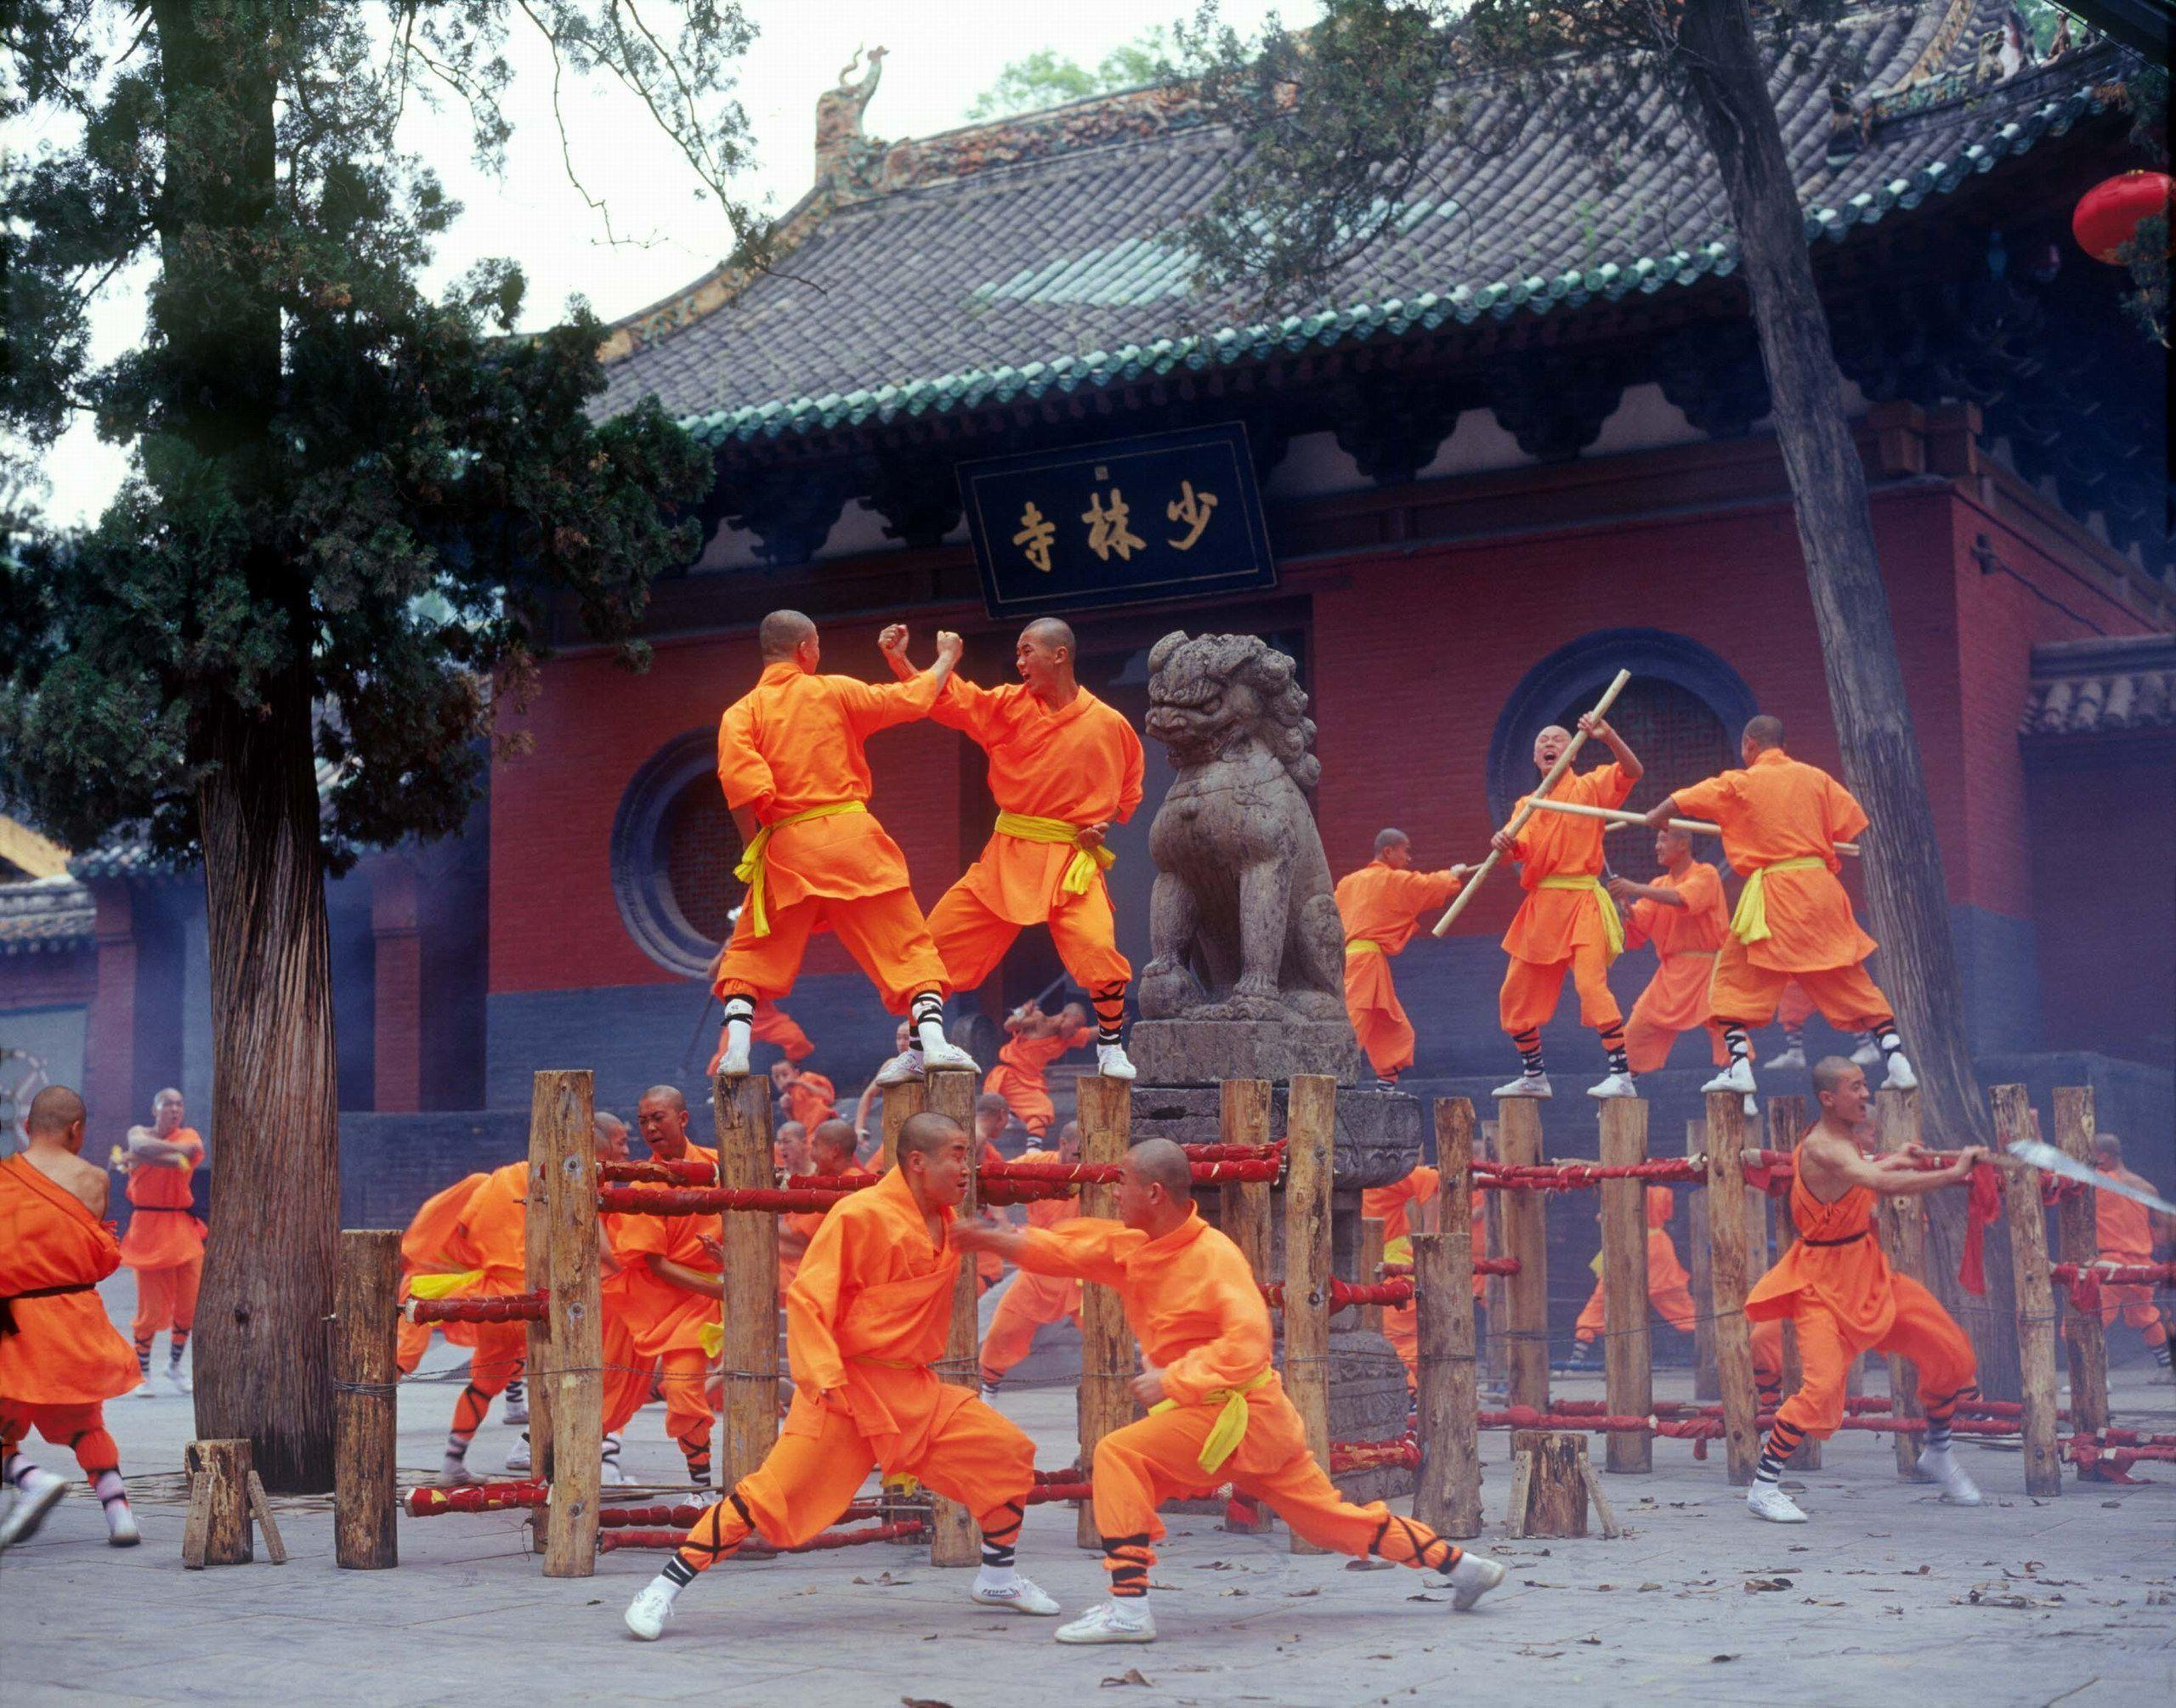 shaolin temple wallpaper - photo #5